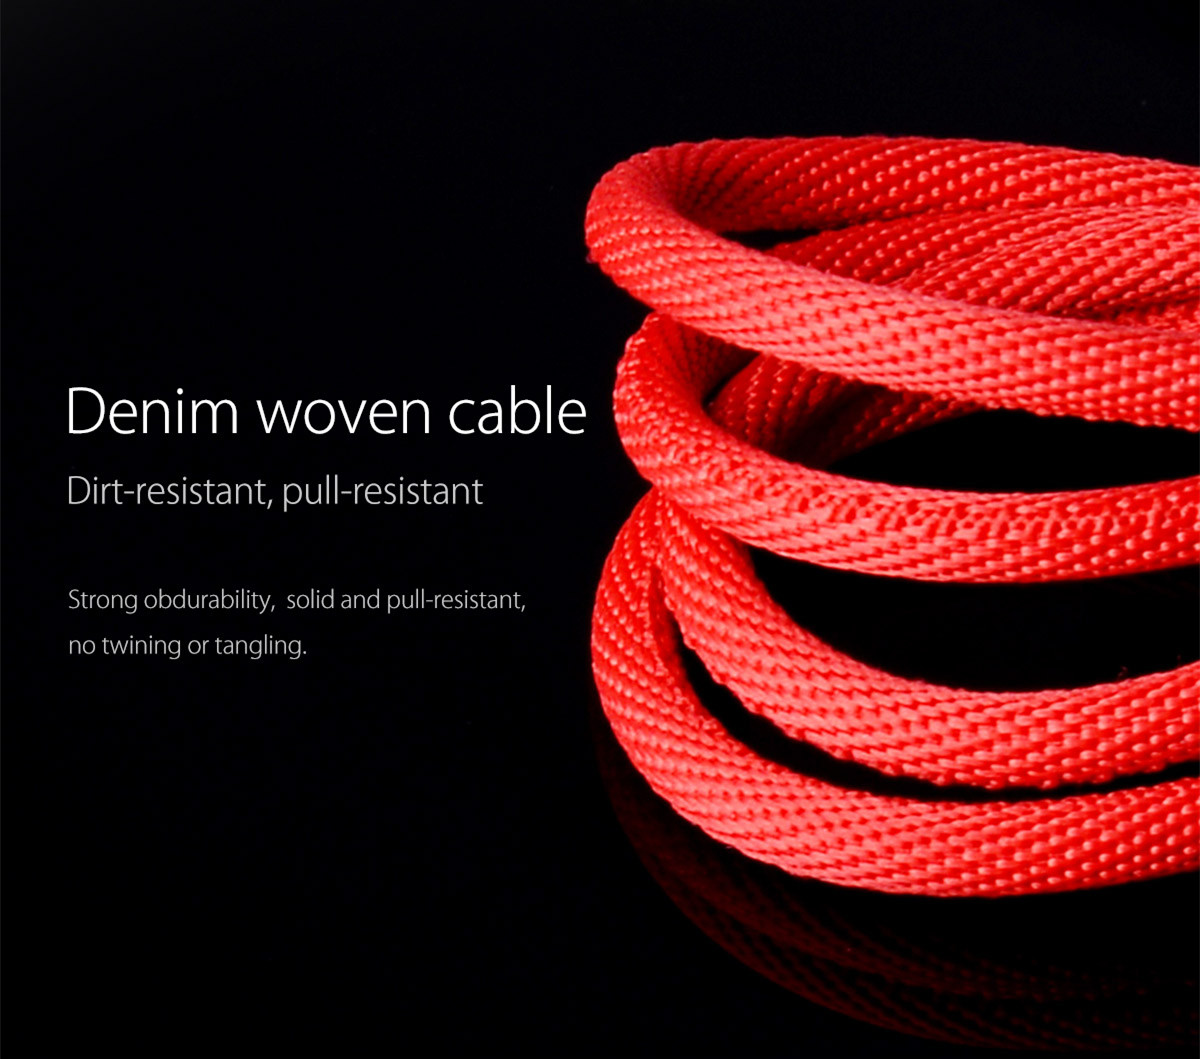 woven cable, plug-resistant and durable